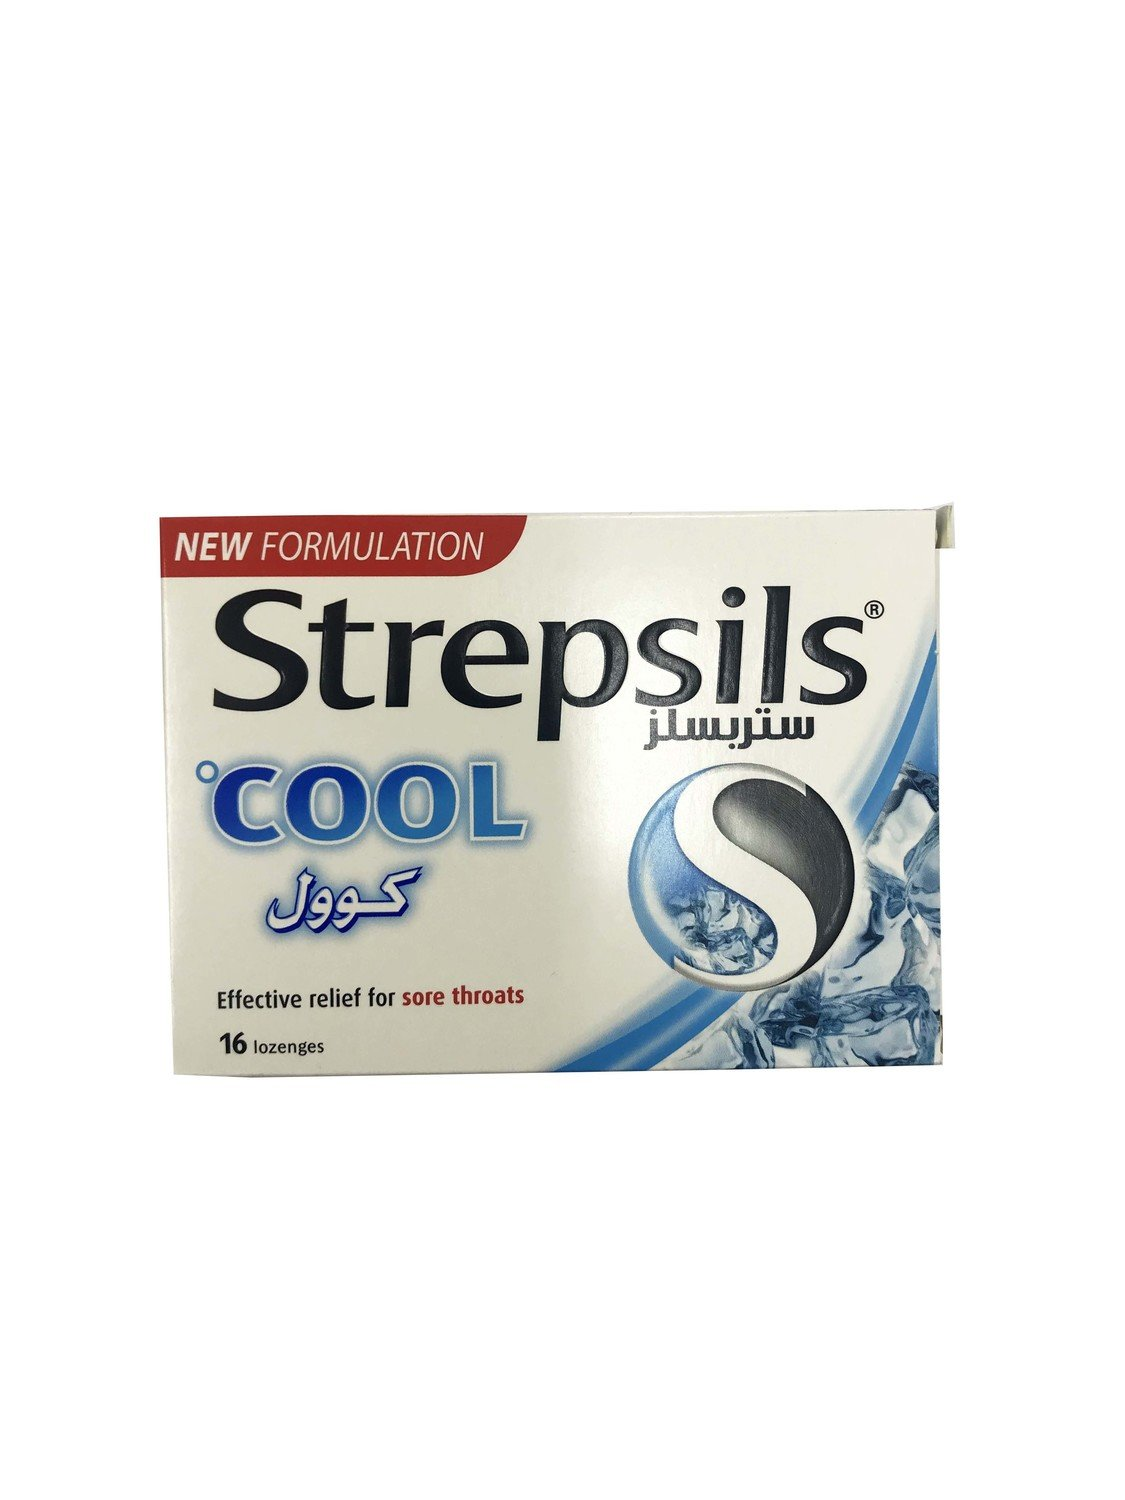 Strepsils Cool Effective Relief for Sore Throats